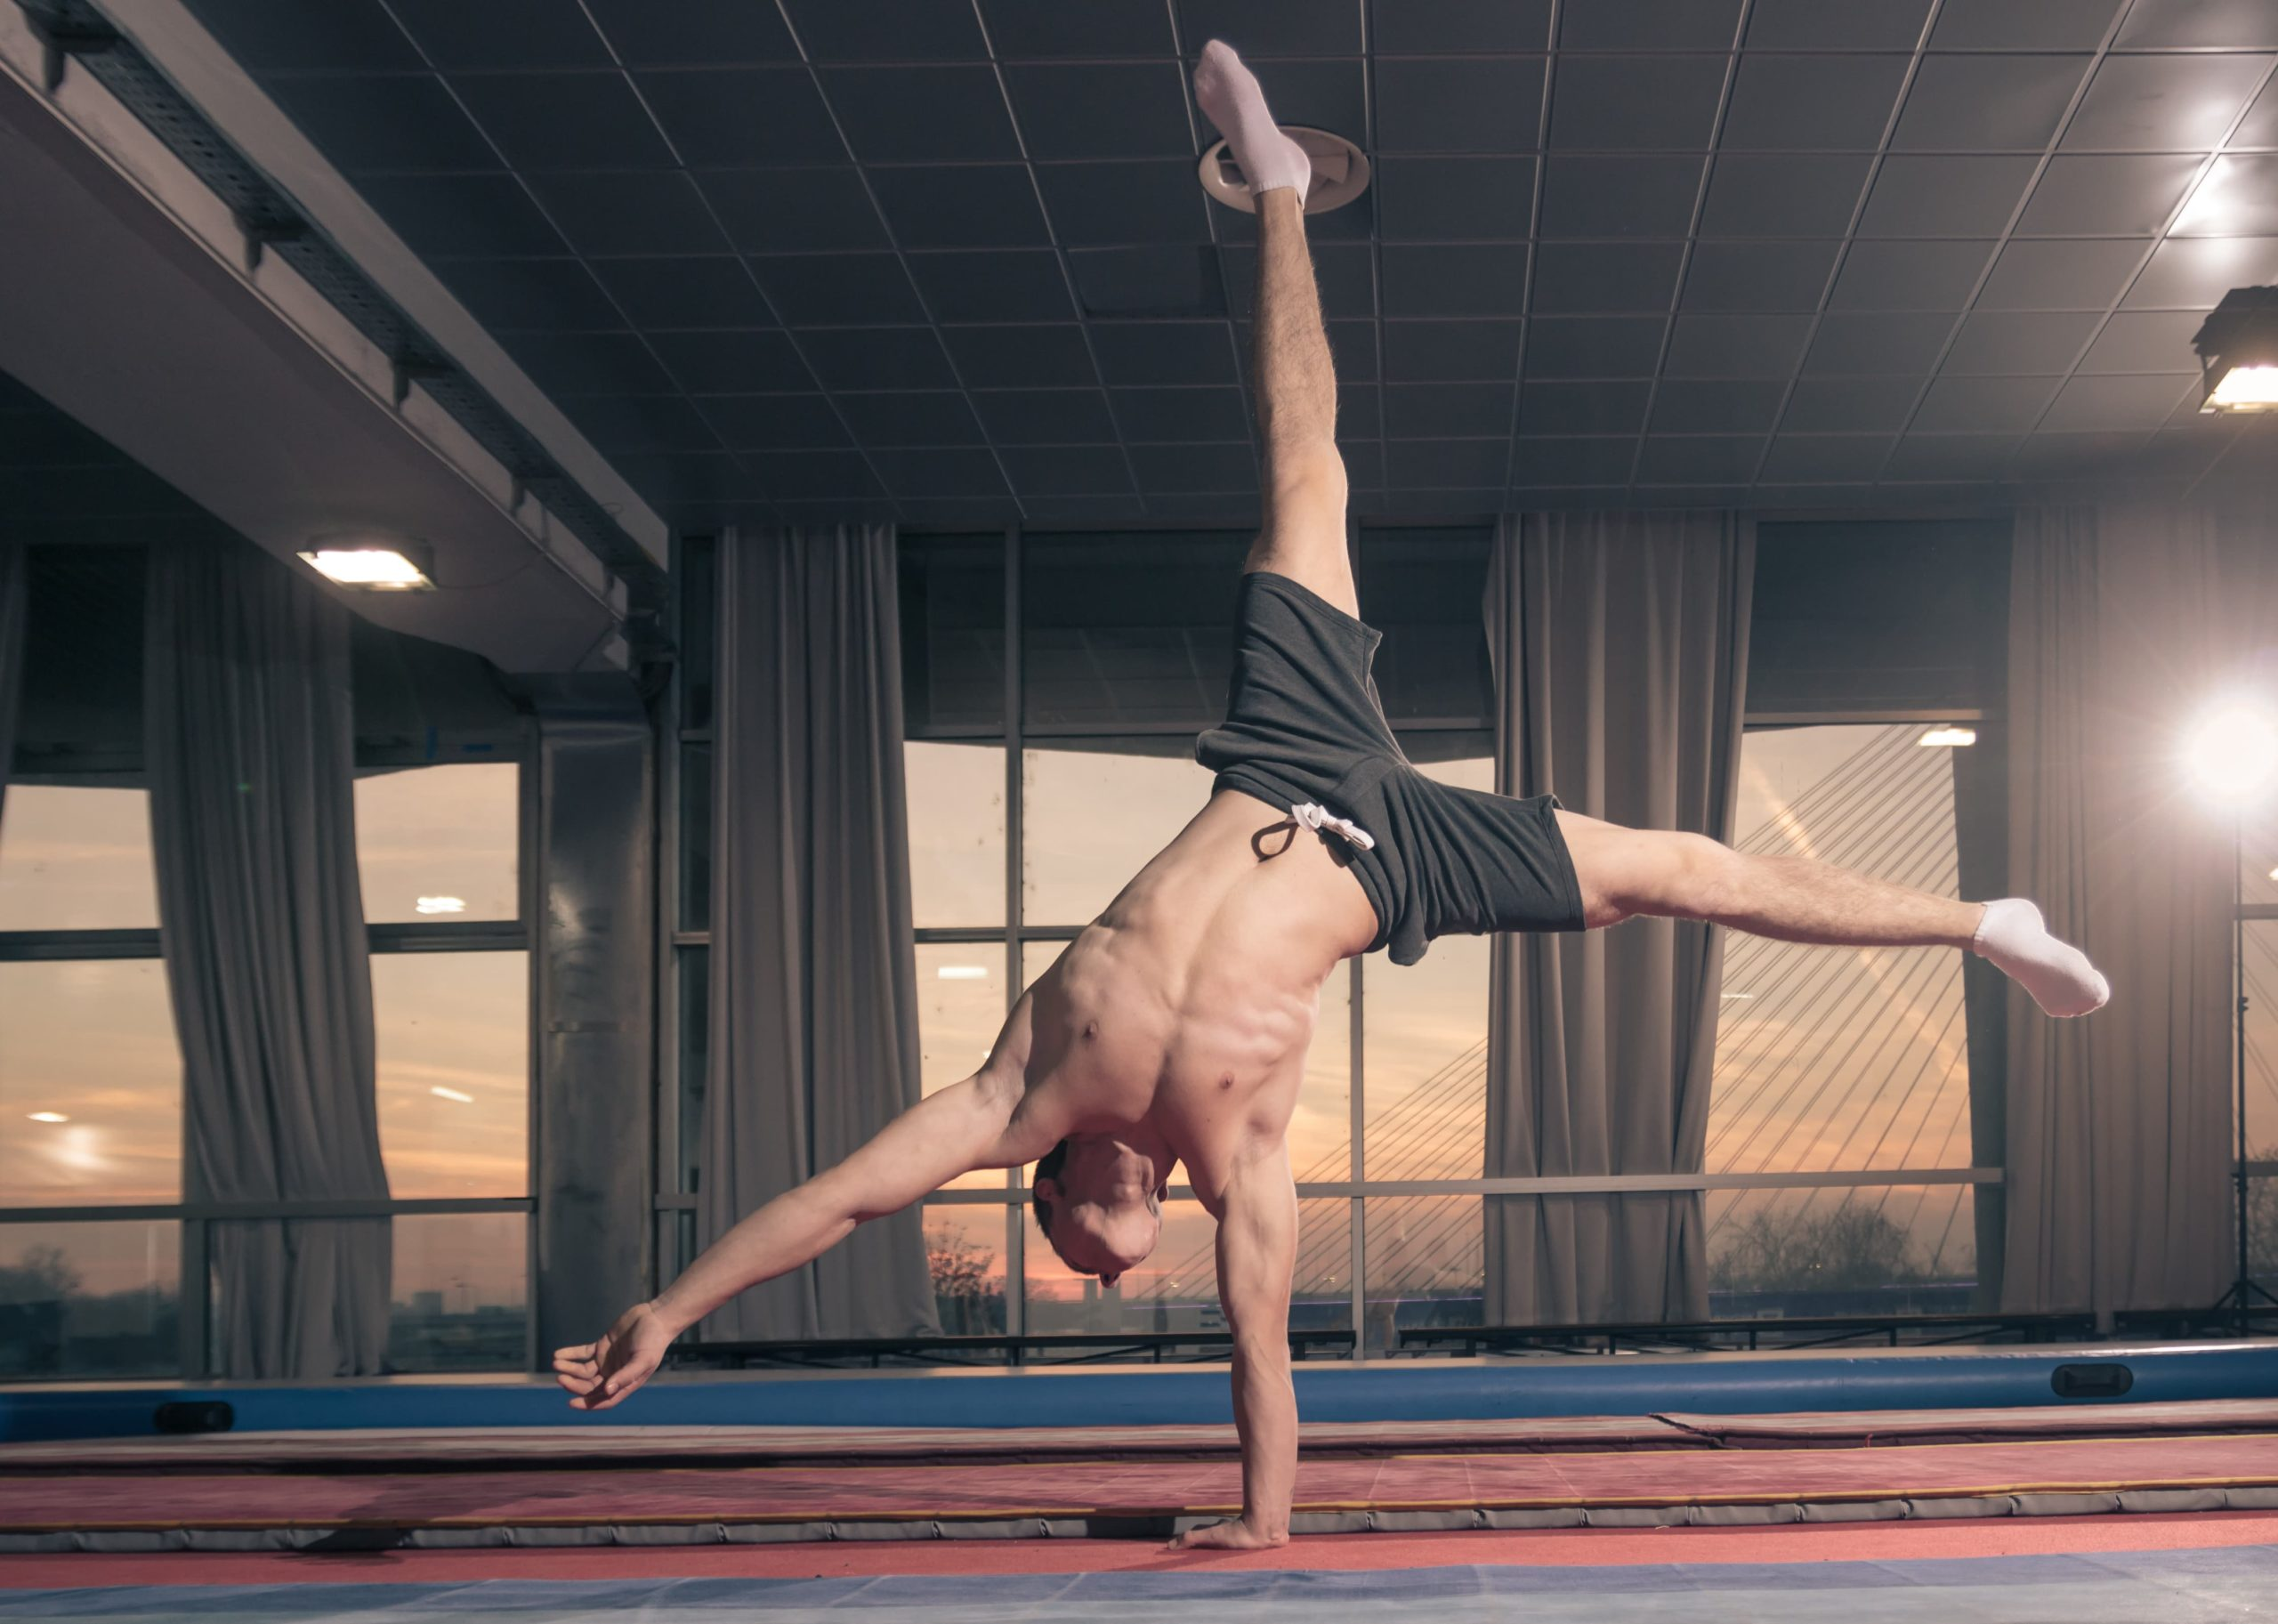 Man doing some acrobatic moves that demand focus, mental clarity and physical energy.